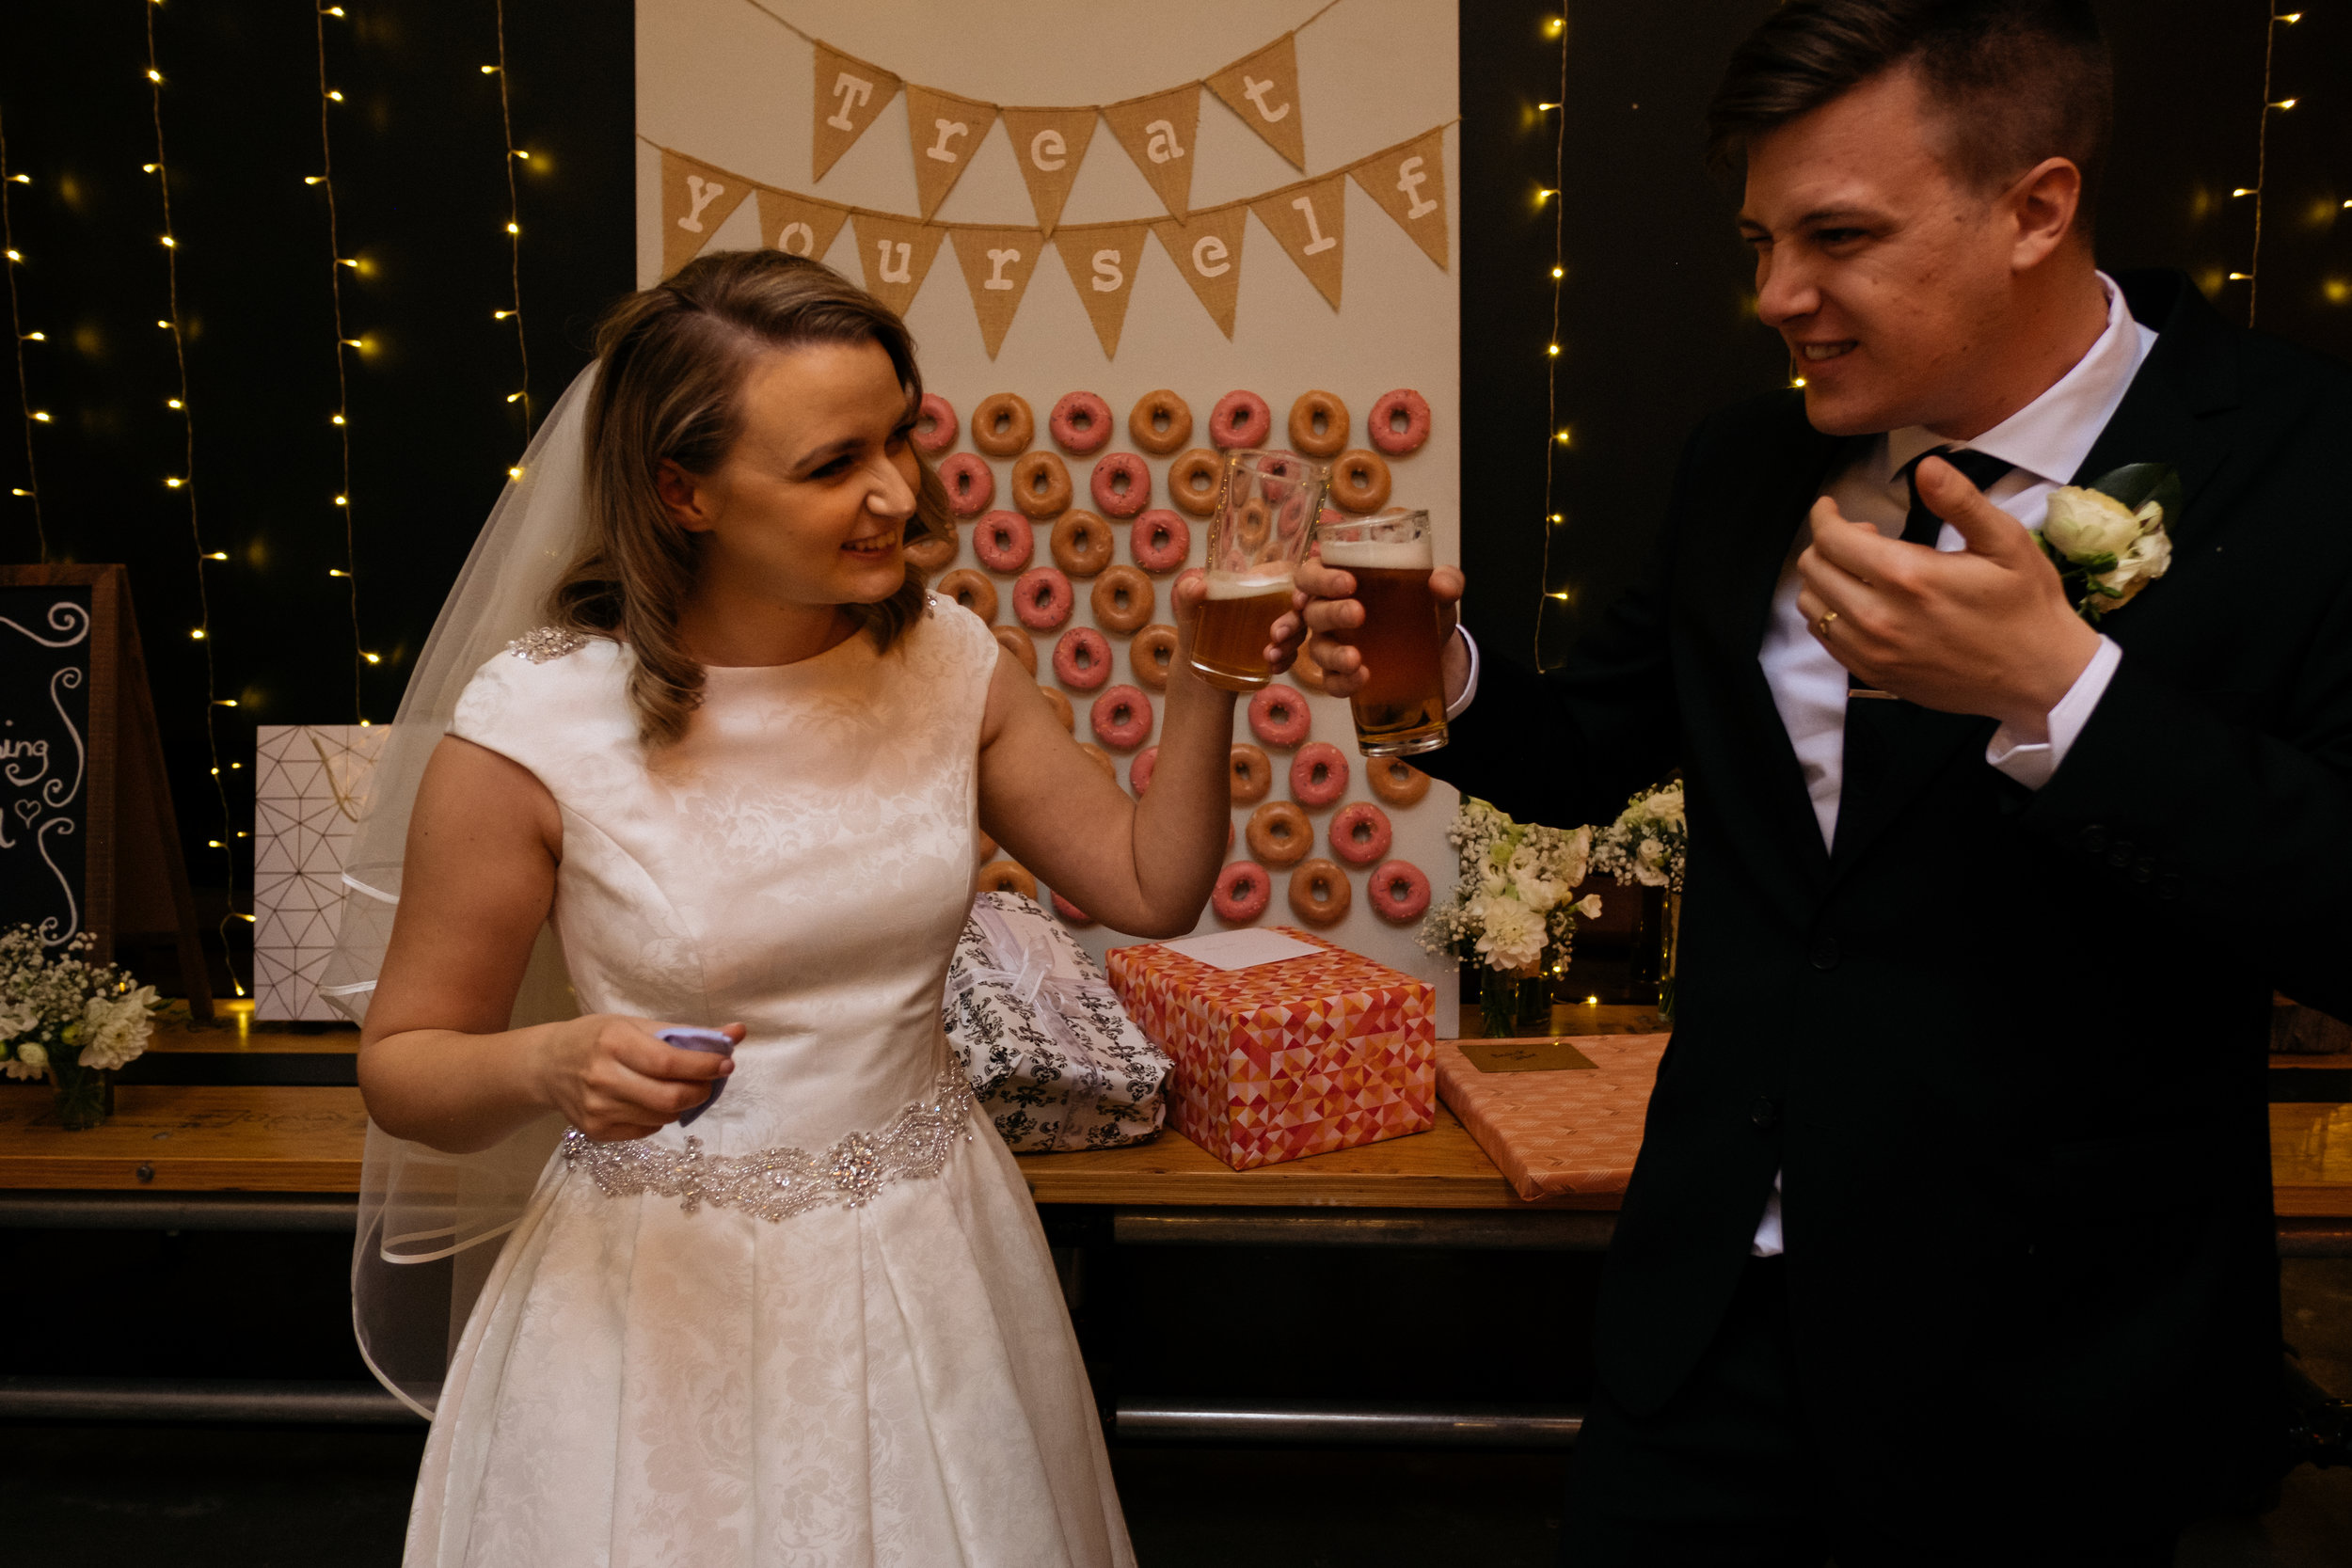 Bride and groom drinking beer after wedding ceremony